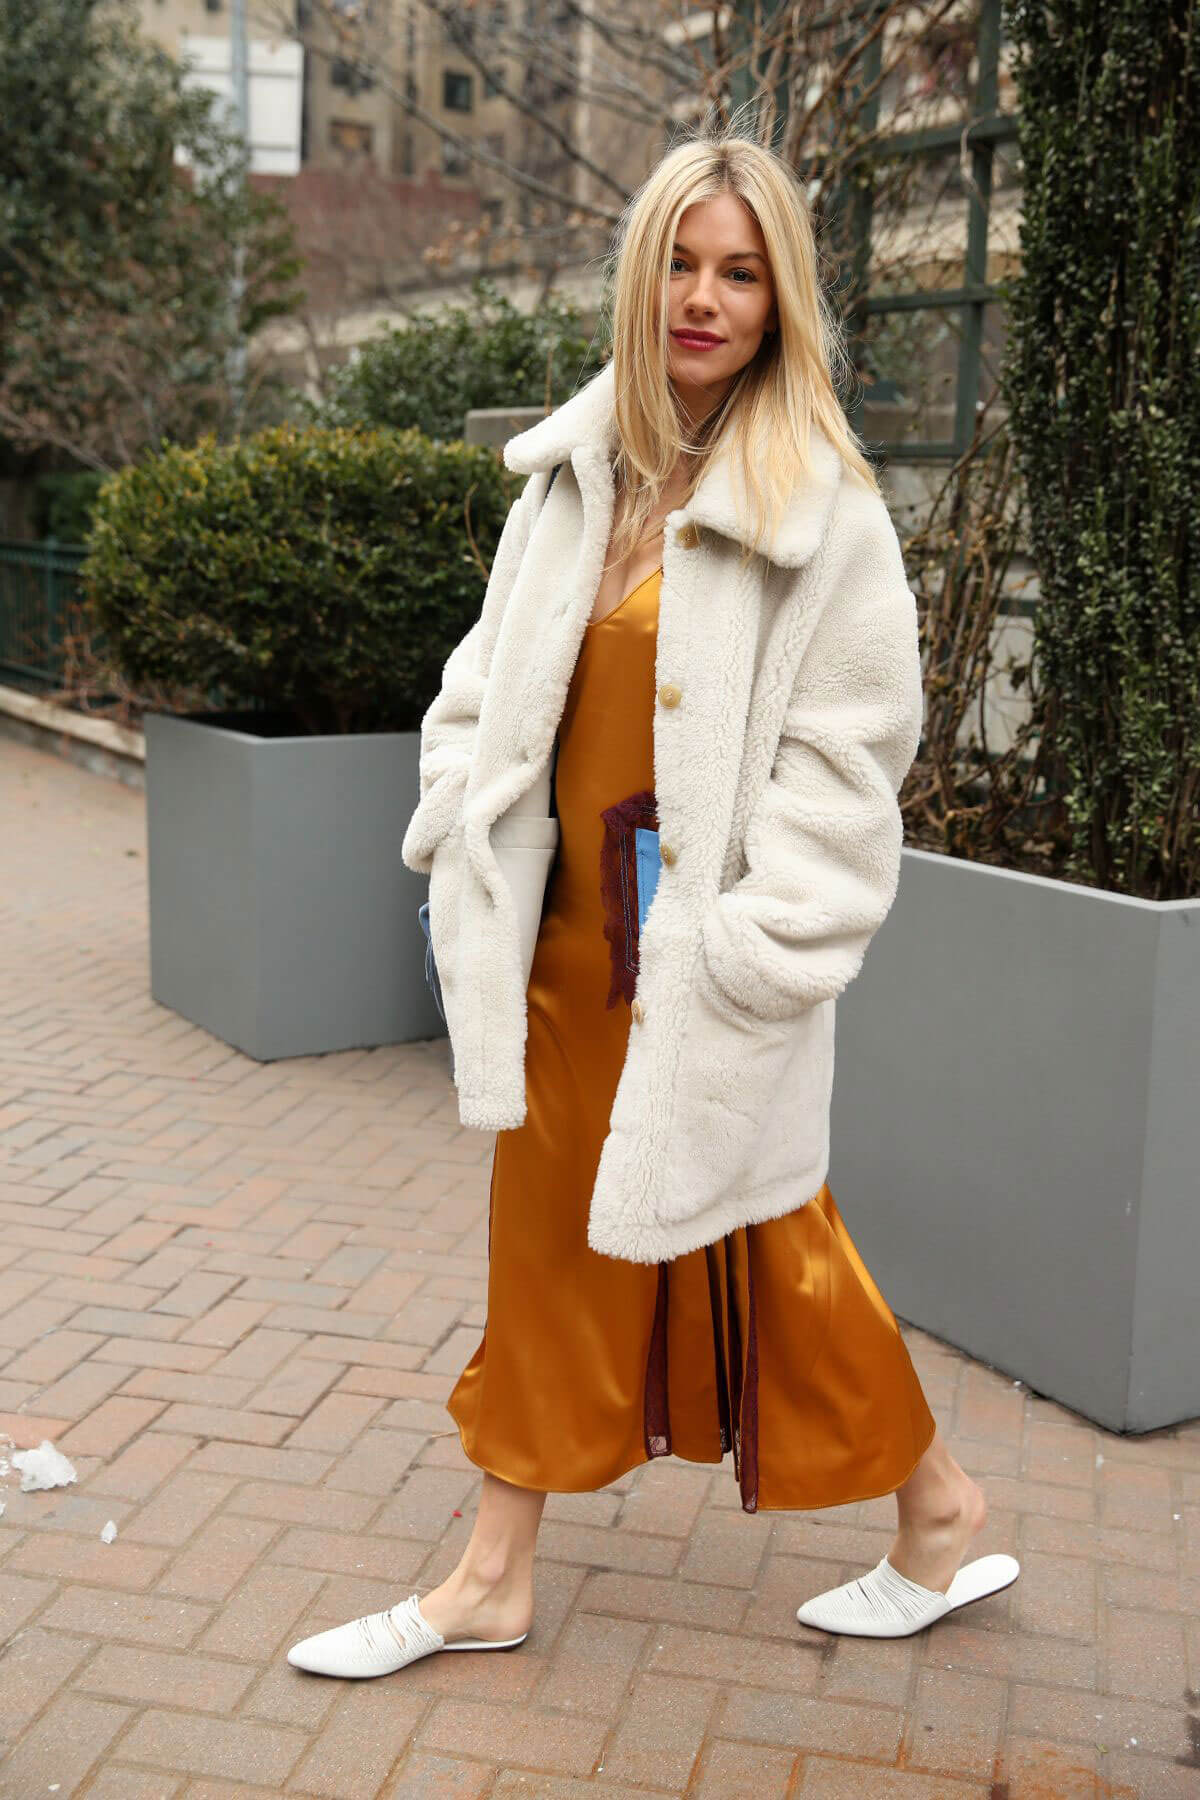 Sienna miller stills at tory burch fall winter 2018 19 show at new york fashion week 2018 02 09 Sienna miller fashion style tumblr